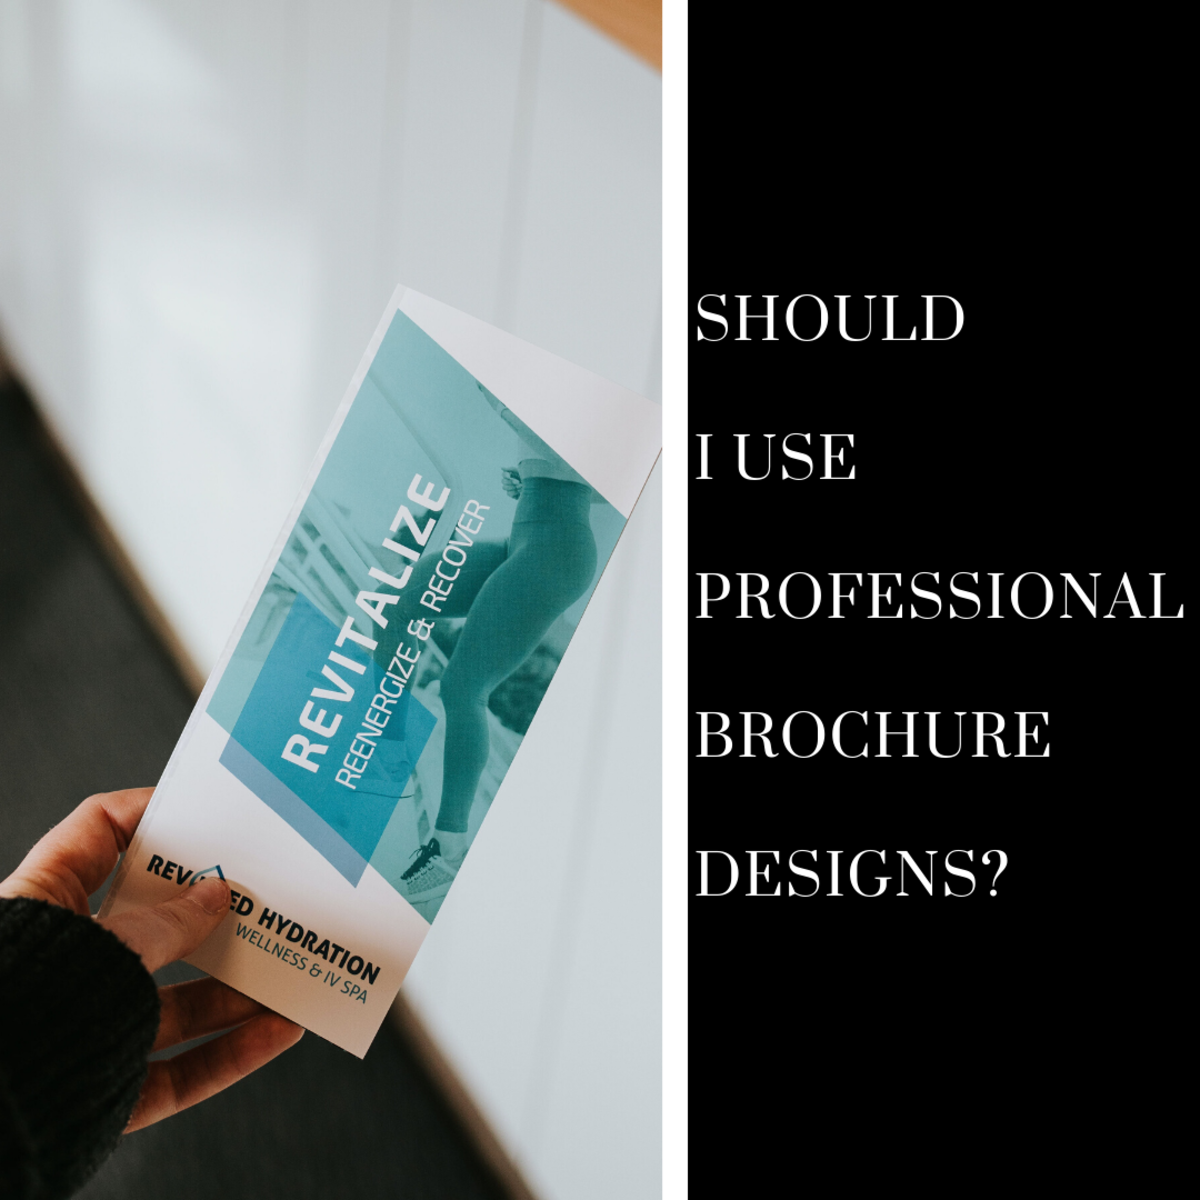 Read on to learn how brochures can help your business.